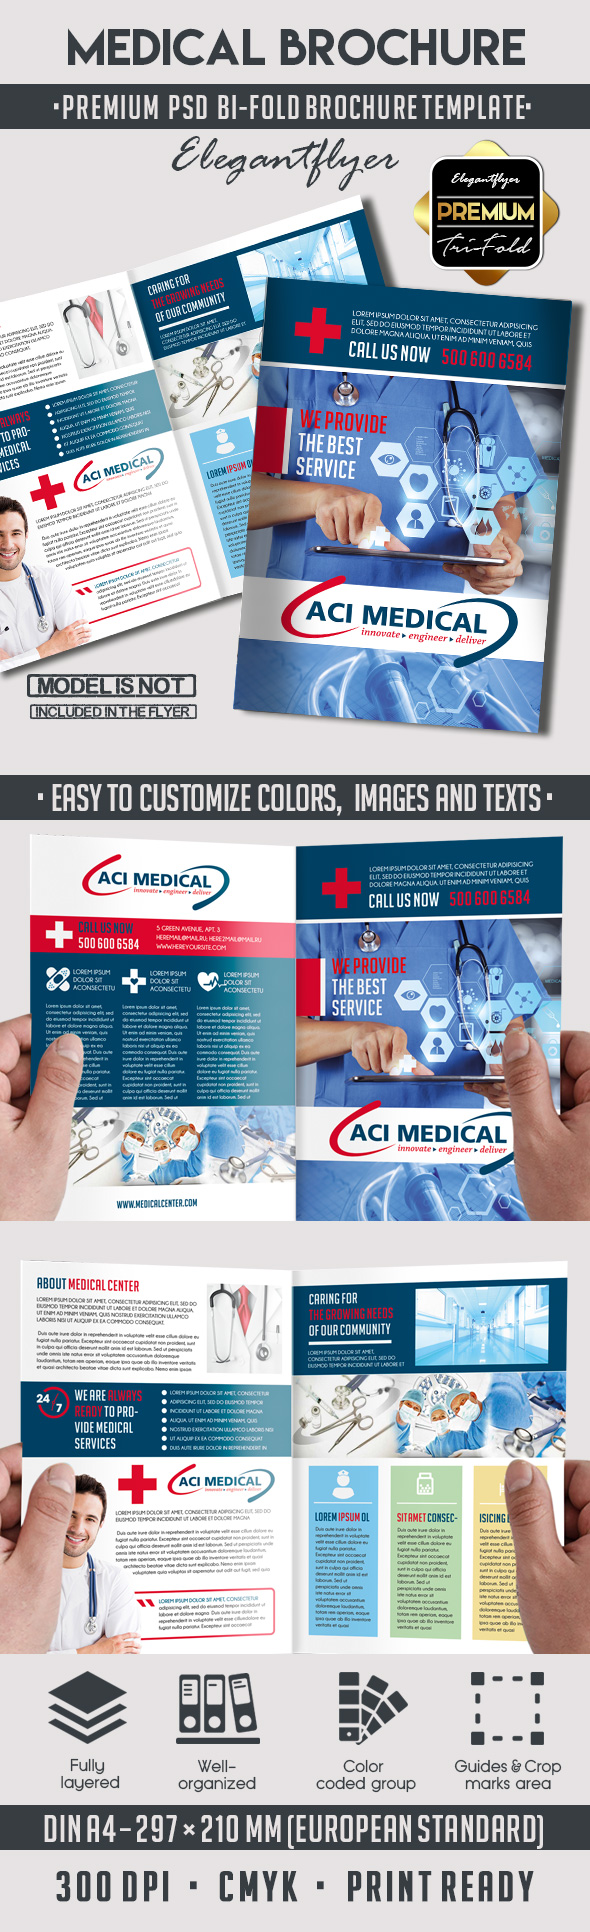 Brochure Template For Medical